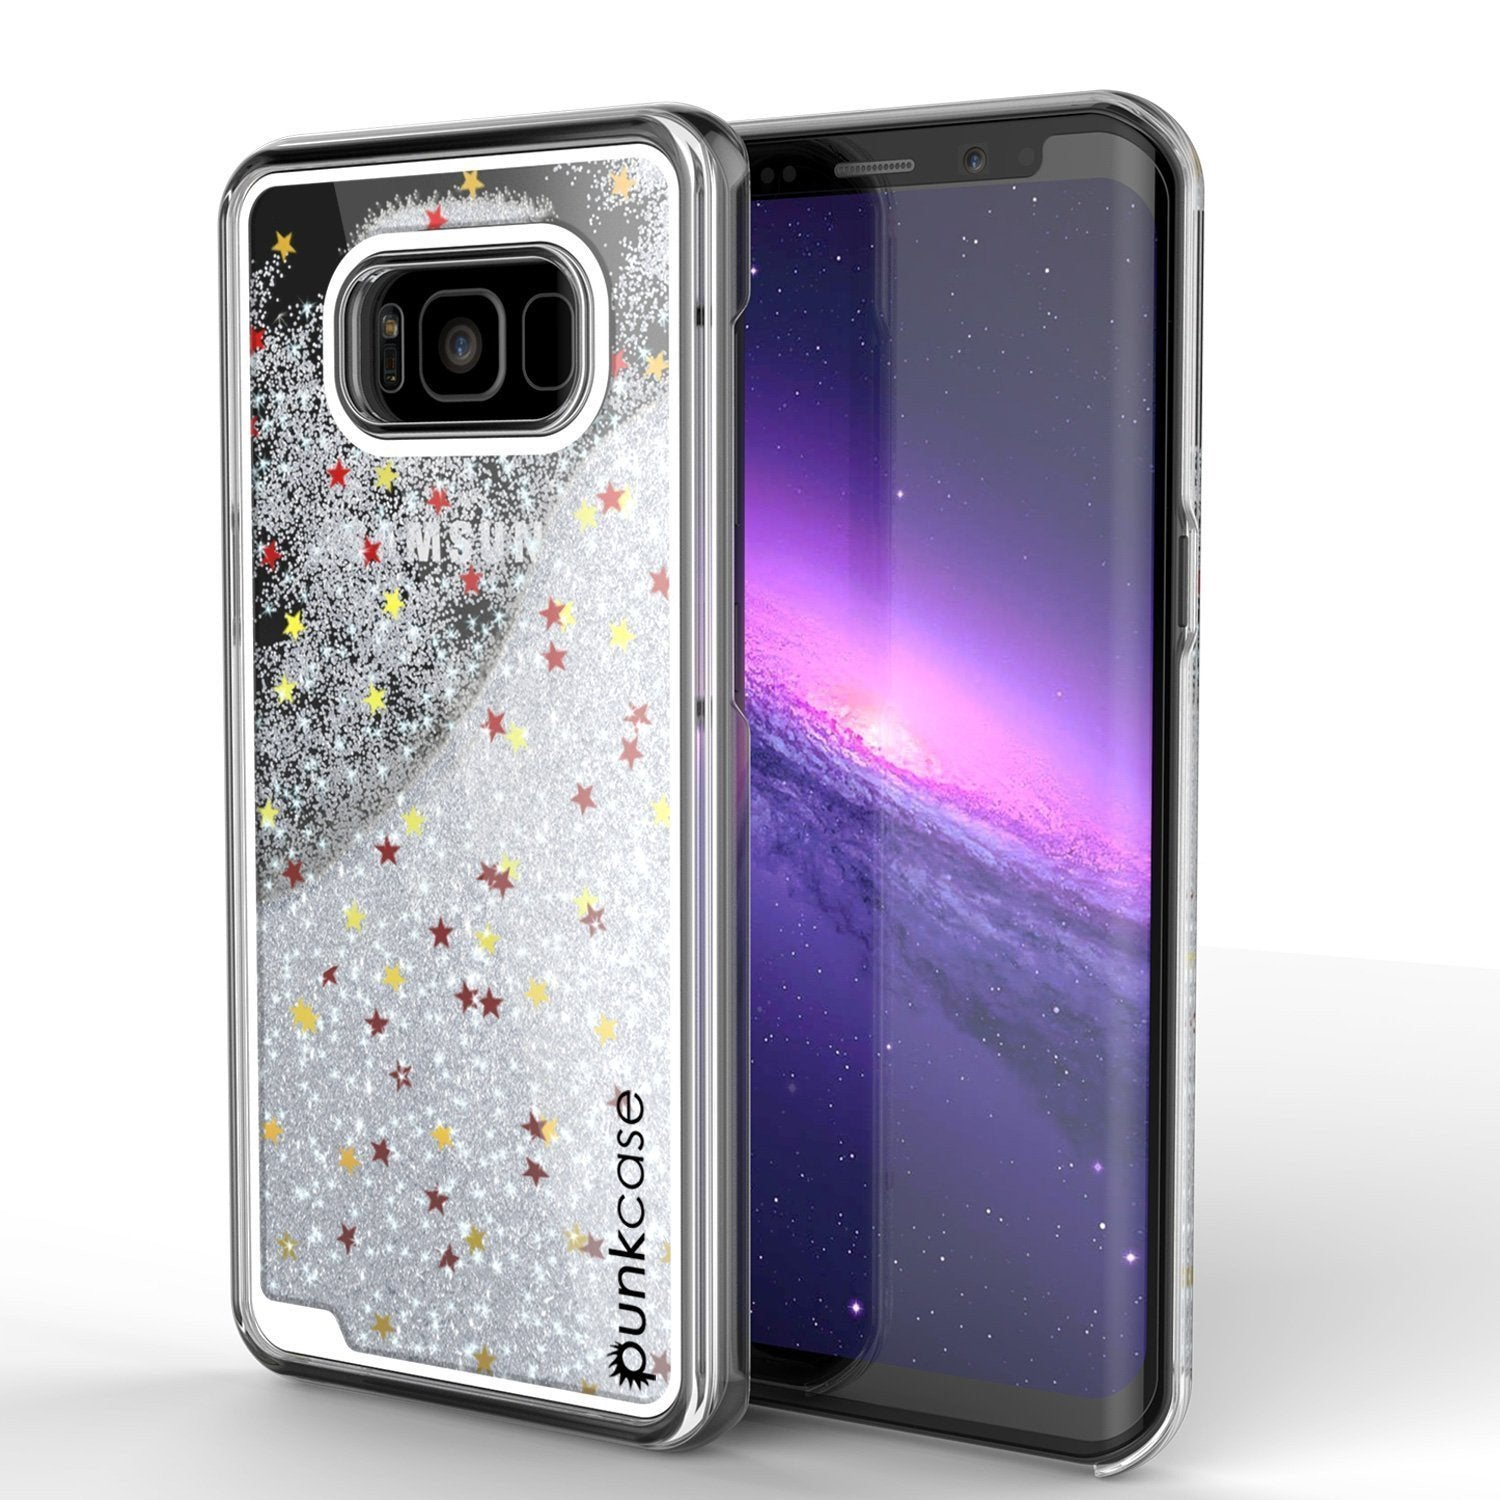 Galaxy S8 Case, Punkcase [Liquid Series] Protective Dual Layer Floating Glitter Cover with lots of Bling & Sparkle + PunkShield Screen Protector for Samsung S8 [Silver]